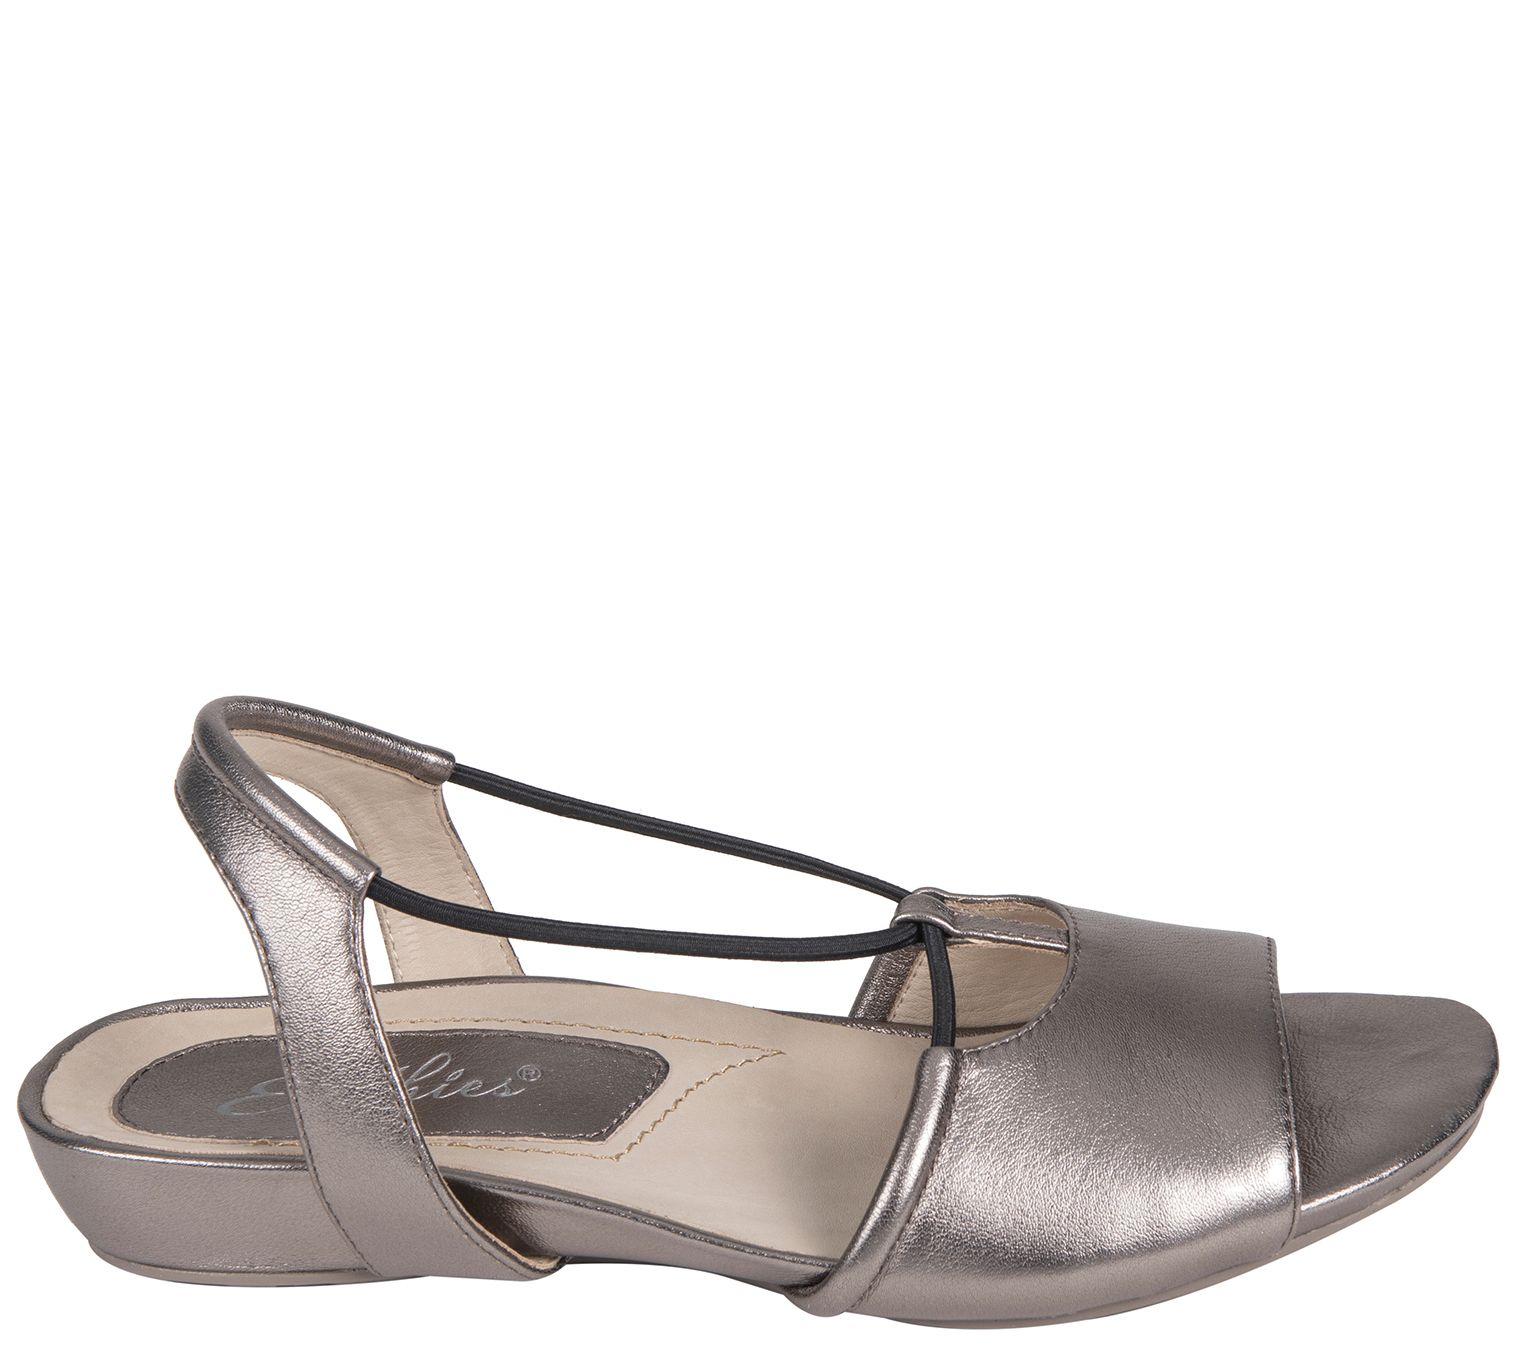 eb8215684c9e Earthies Leather Sandals - Lacona - Page 1 — QVC.com